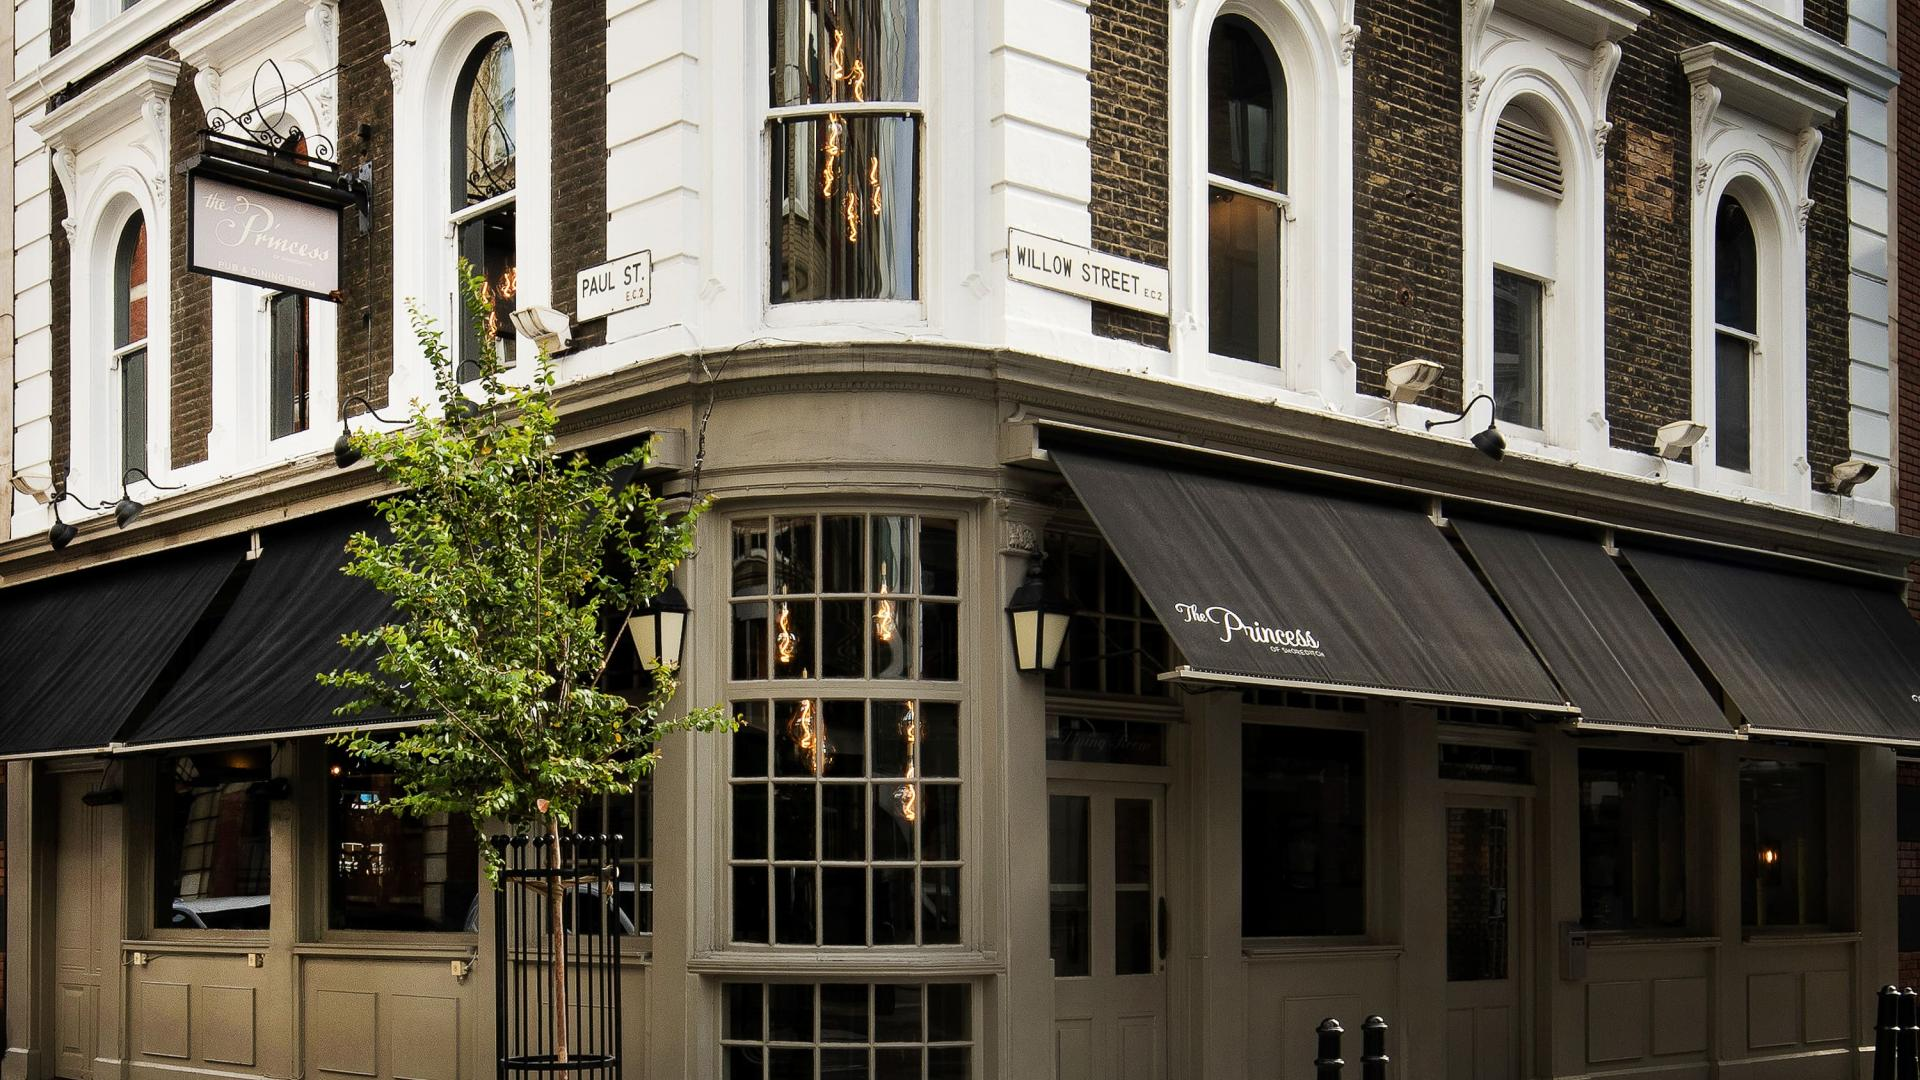 This is an image of the exterior of The Princess of Shoreditch